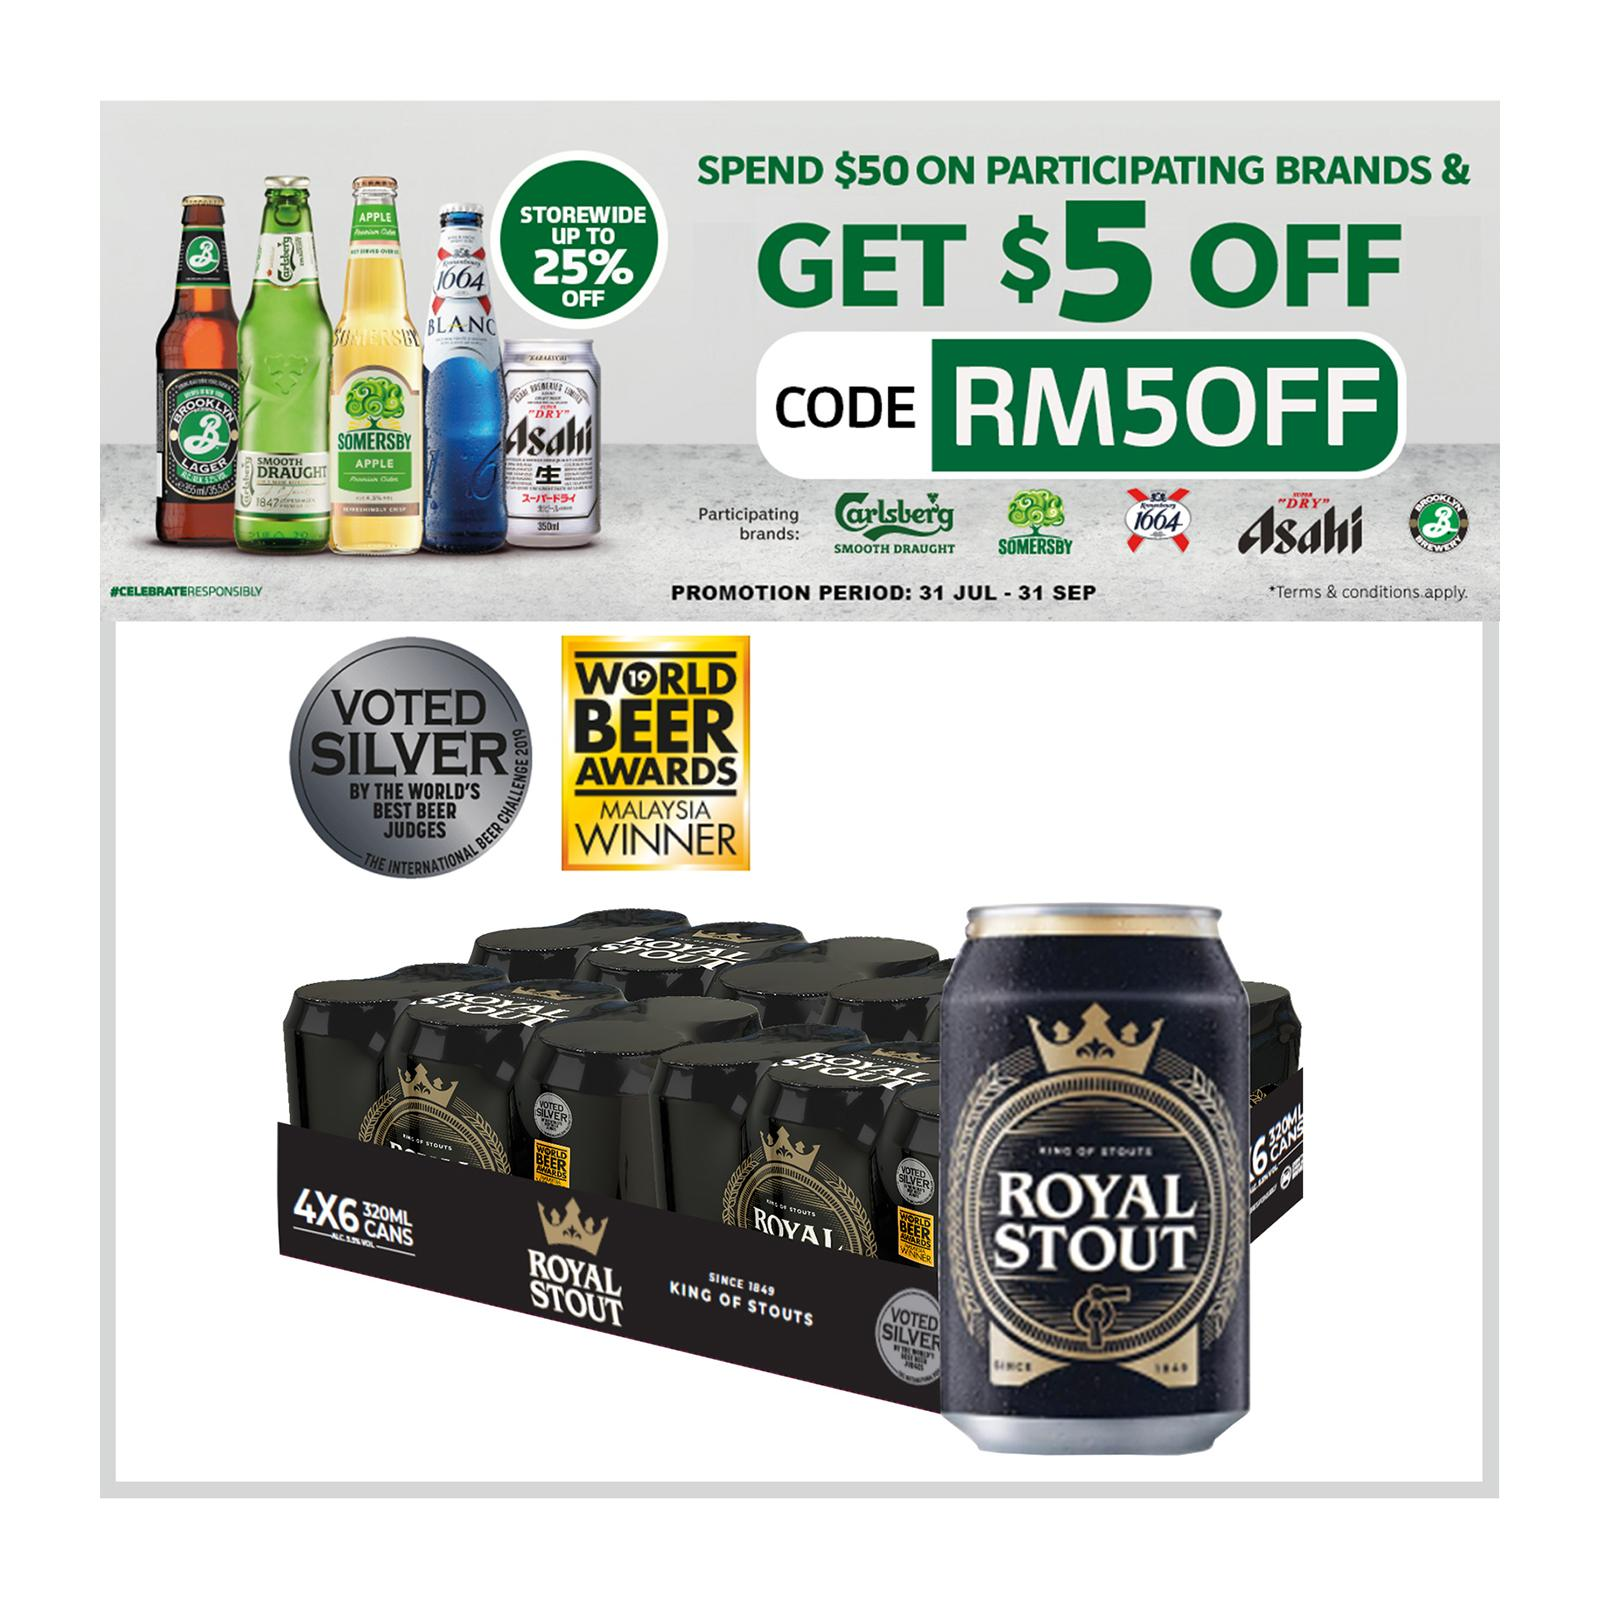 Danish Royal Stout Beer Can 320ml (Pack of 24) Case